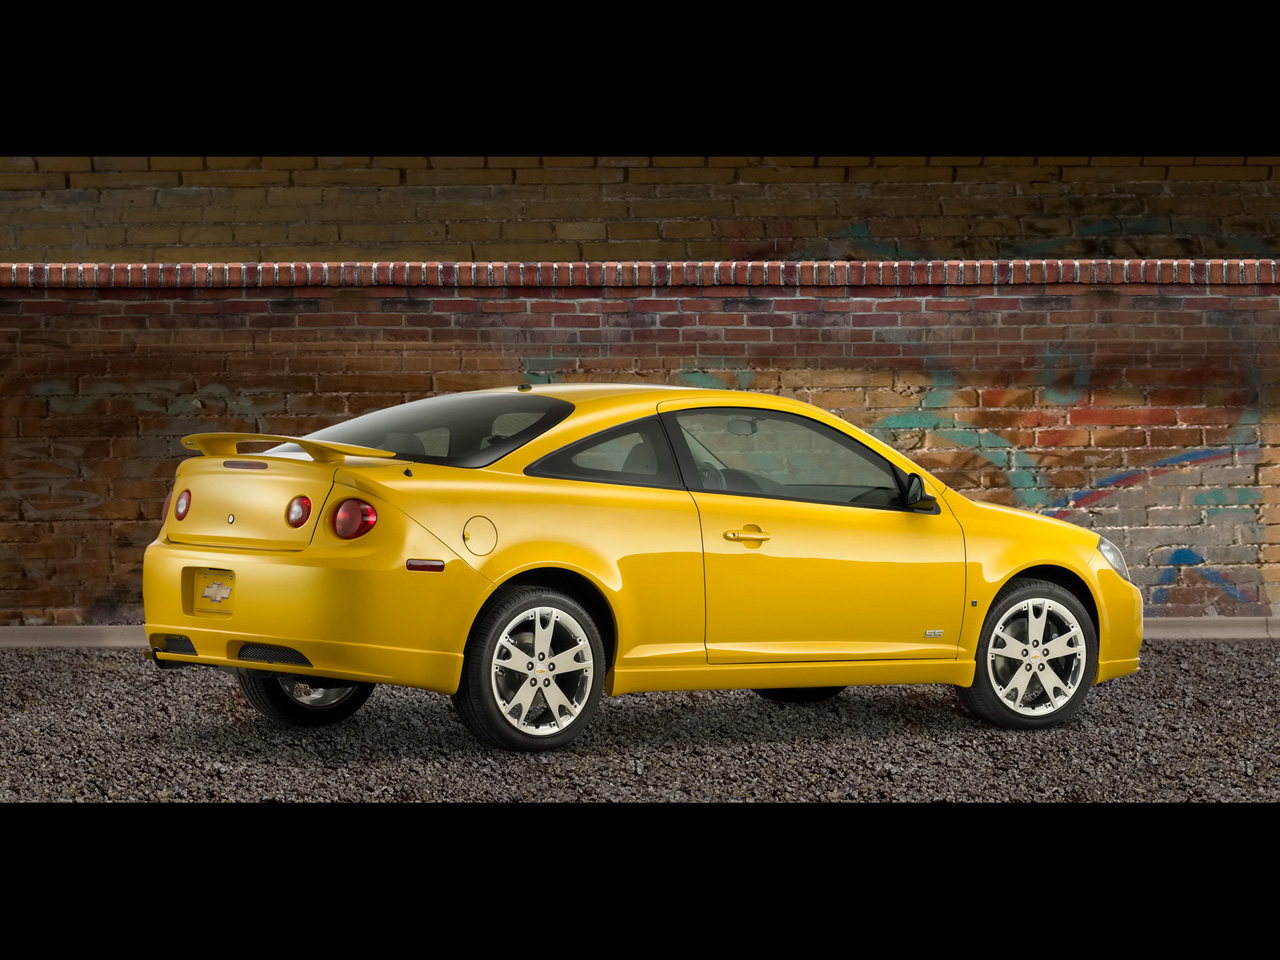 2010 Chevrolet Malibu Owners Manual >> Chevy Cobalt | Autos Post